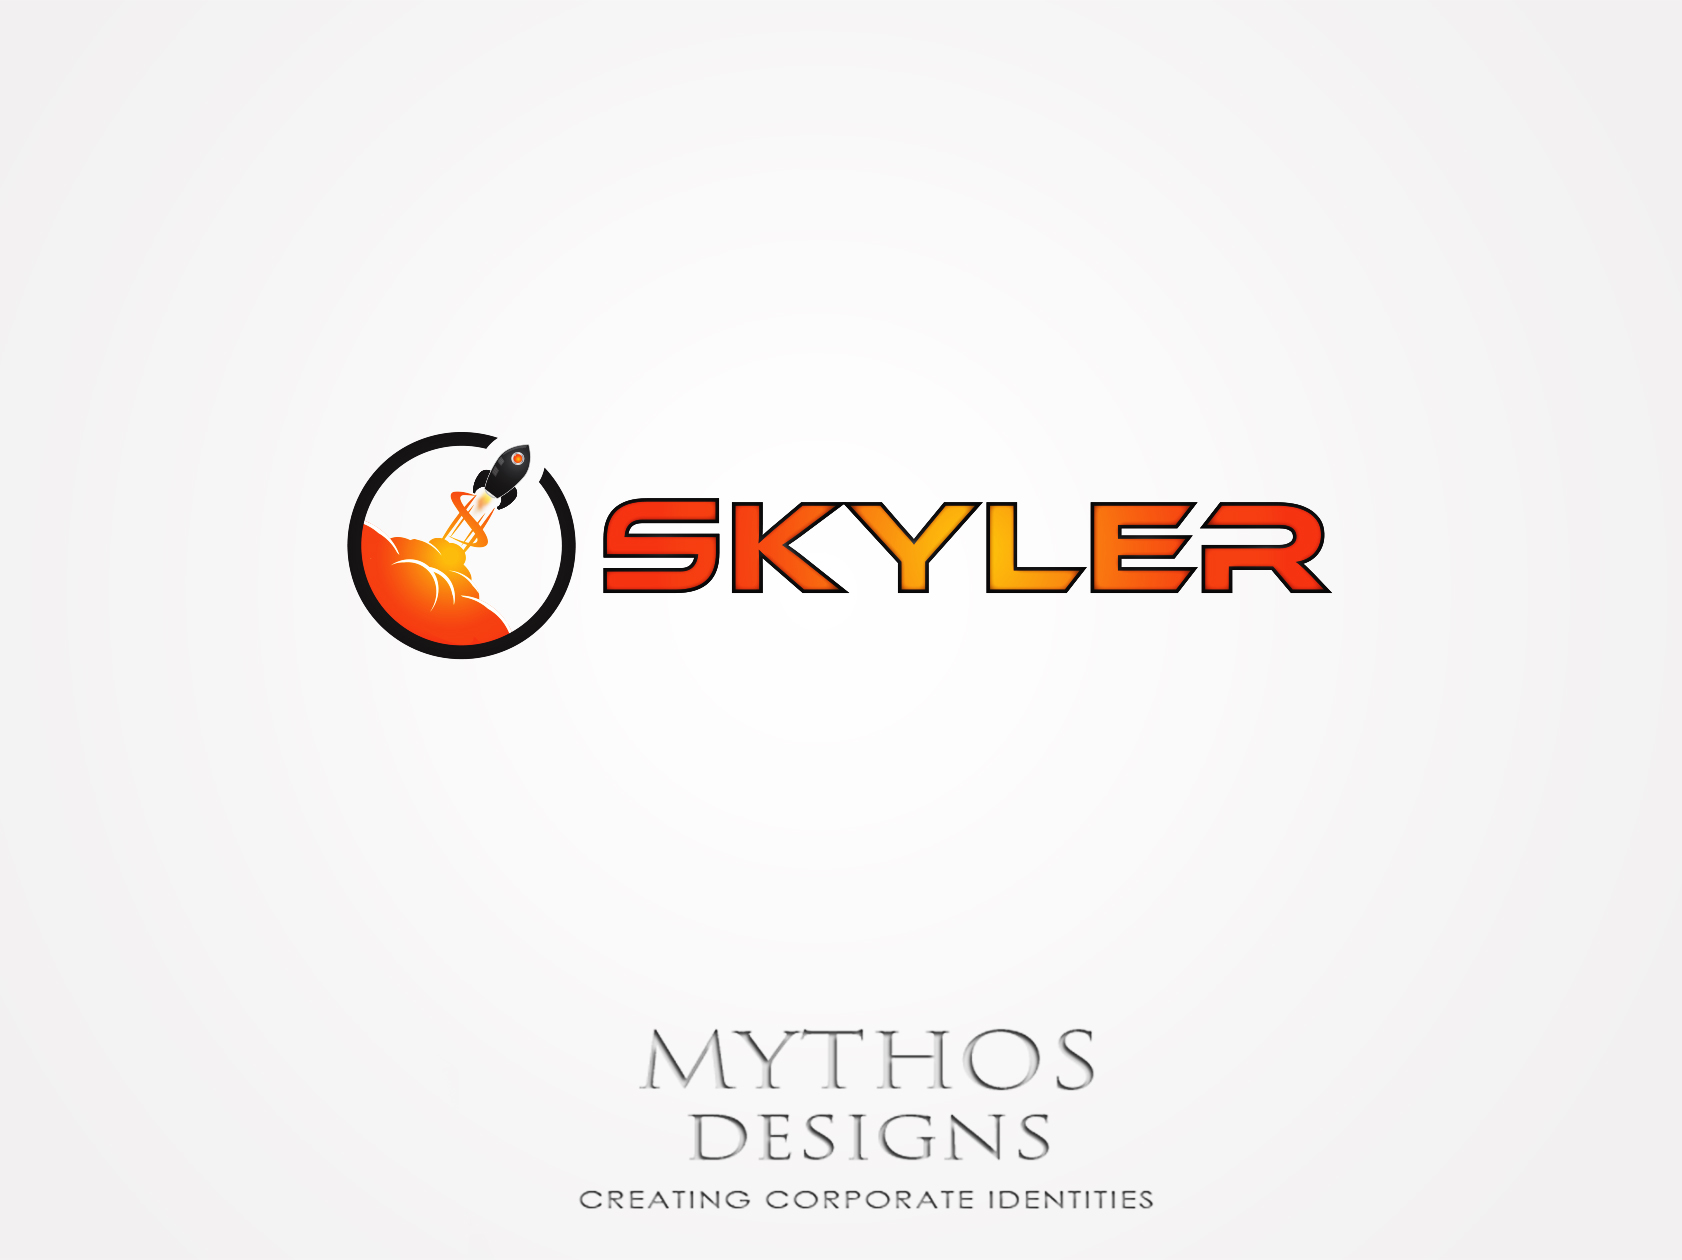 Logo Design by Mythos Designs - Entry No. 79 in the Logo Design Contest Artistic Logo Design for Skyler.Asia.